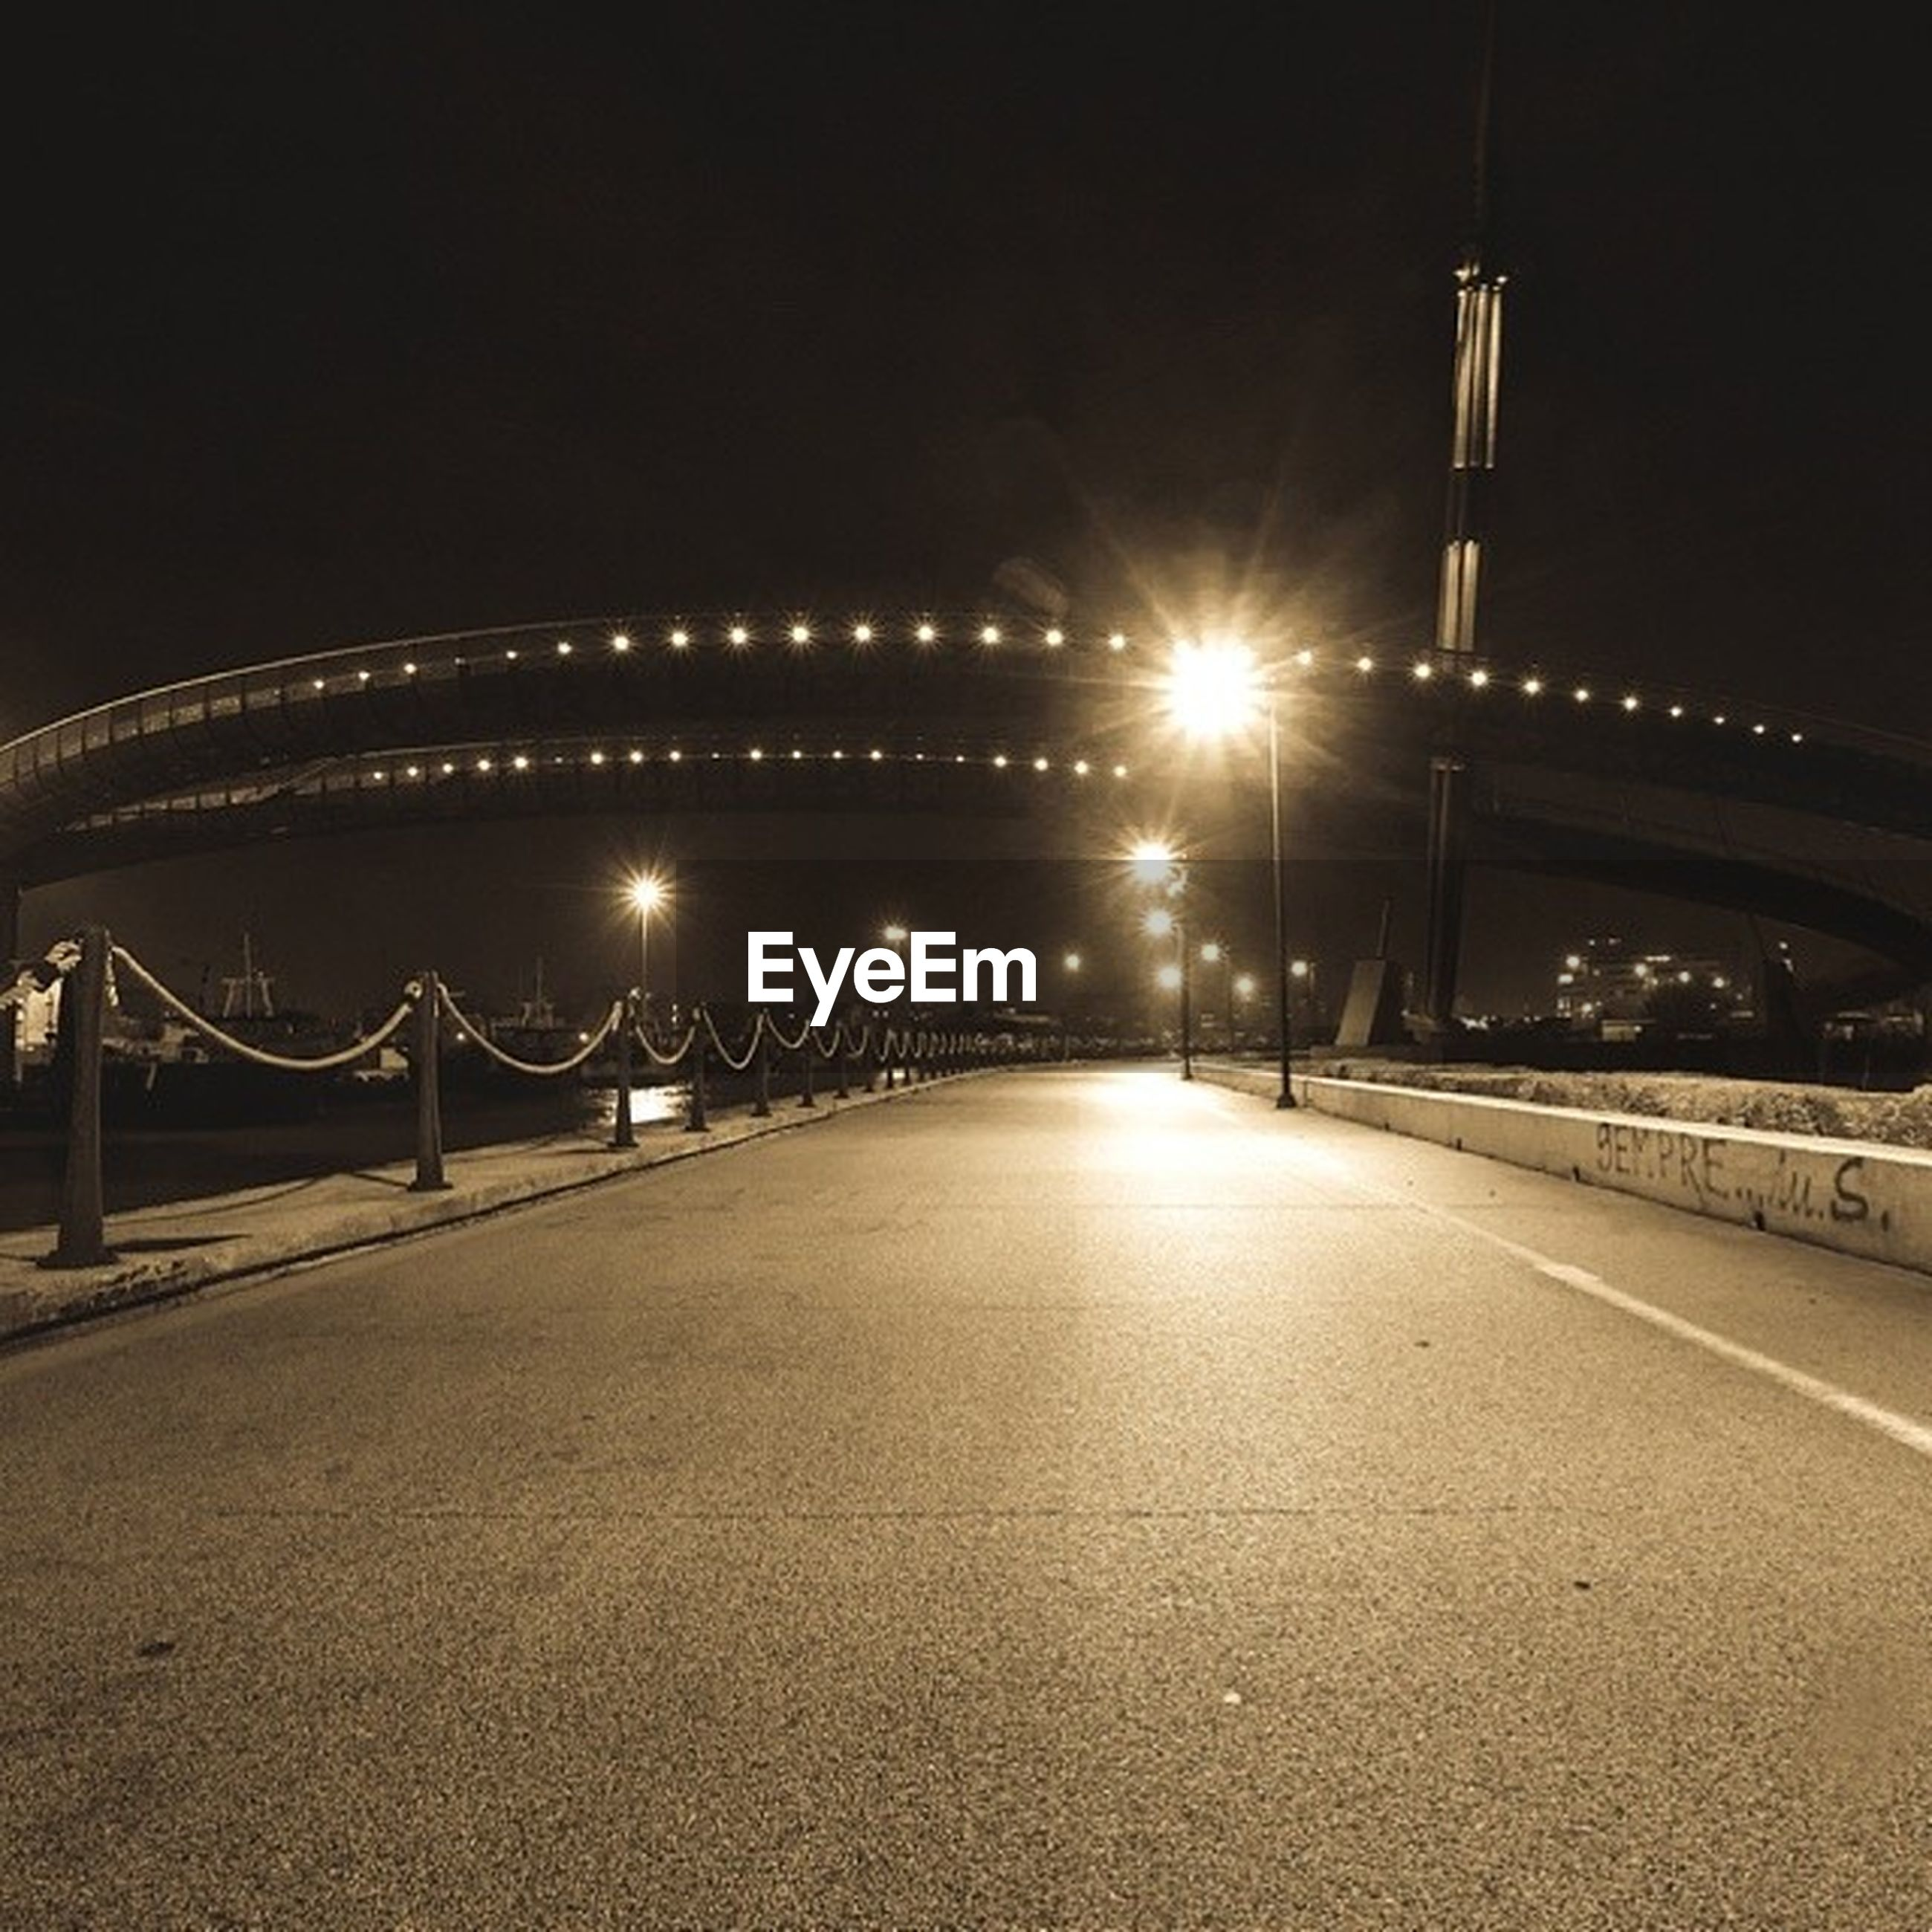 illuminated, night, the way forward, street light, transportation, diminishing perspective, built structure, lighting equipment, architecture, vanishing point, connection, empty, road, bridge - man made structure, clear sky, long, sky, street, copy space, outdoors